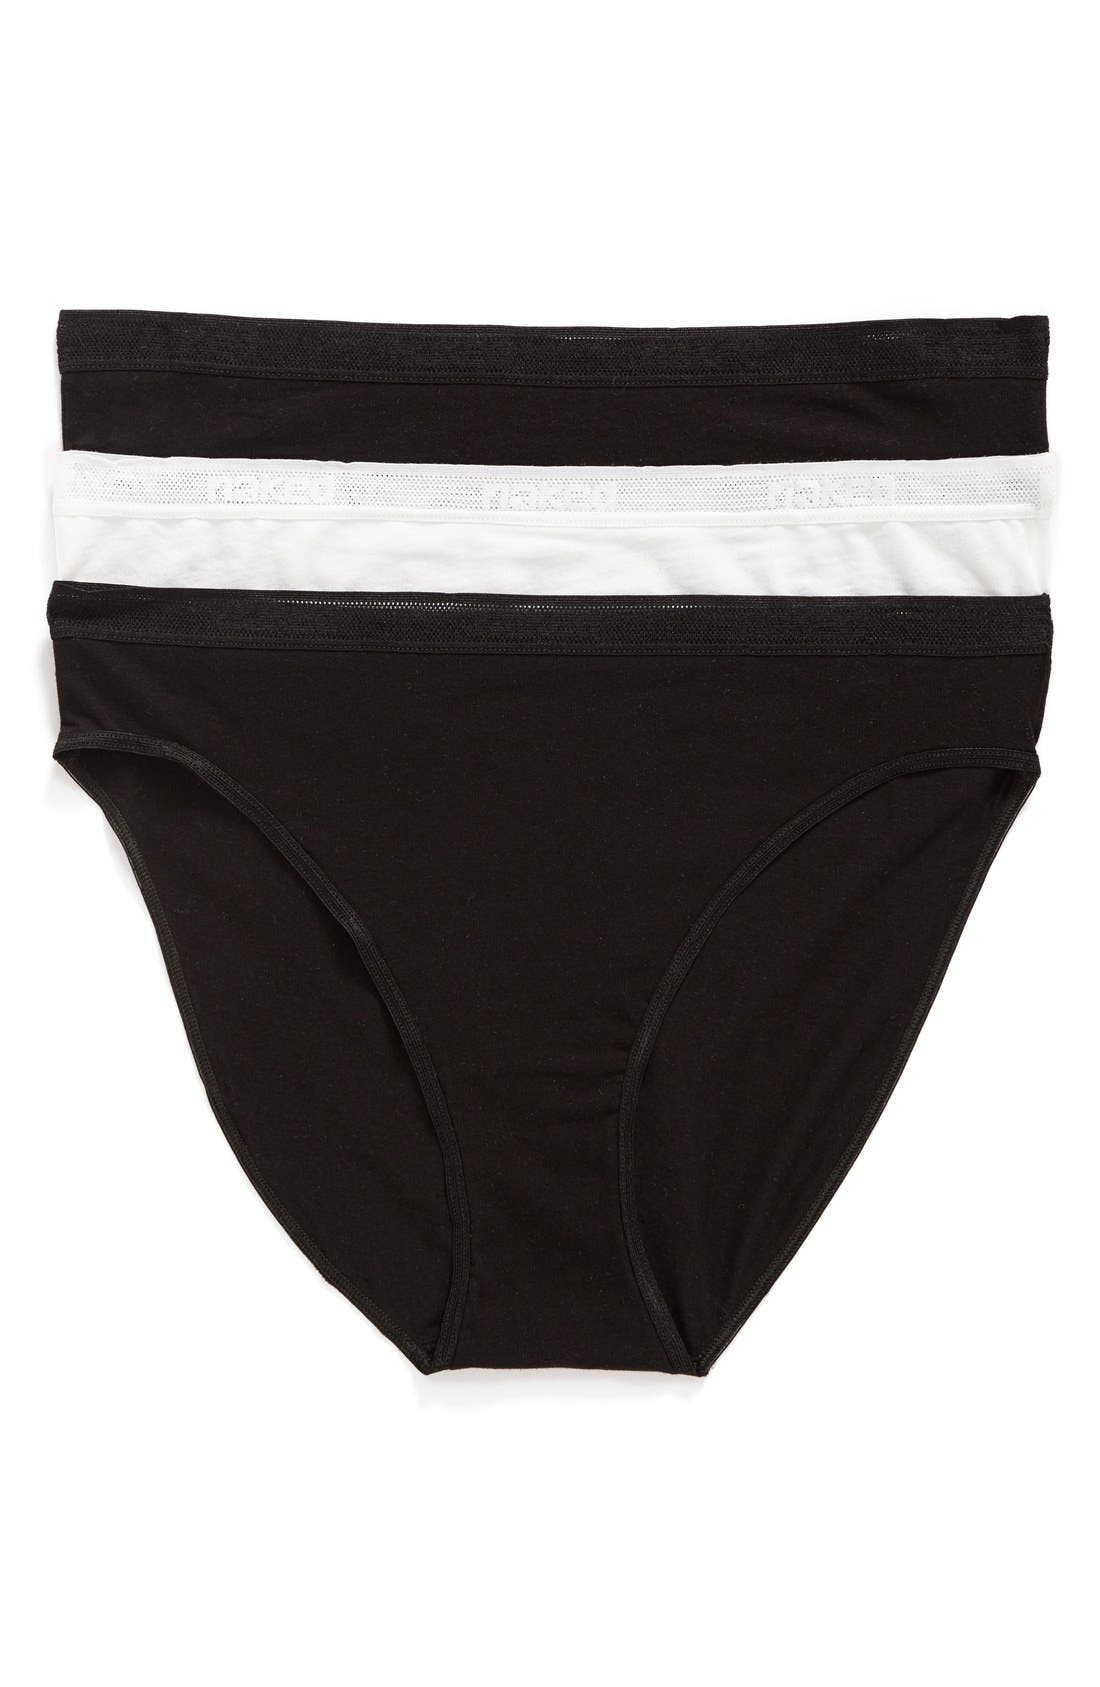 3-Pack Stretch Pima Cotton High Cut Panties,                             Main thumbnail 1, color,                             Black/ Black/ White